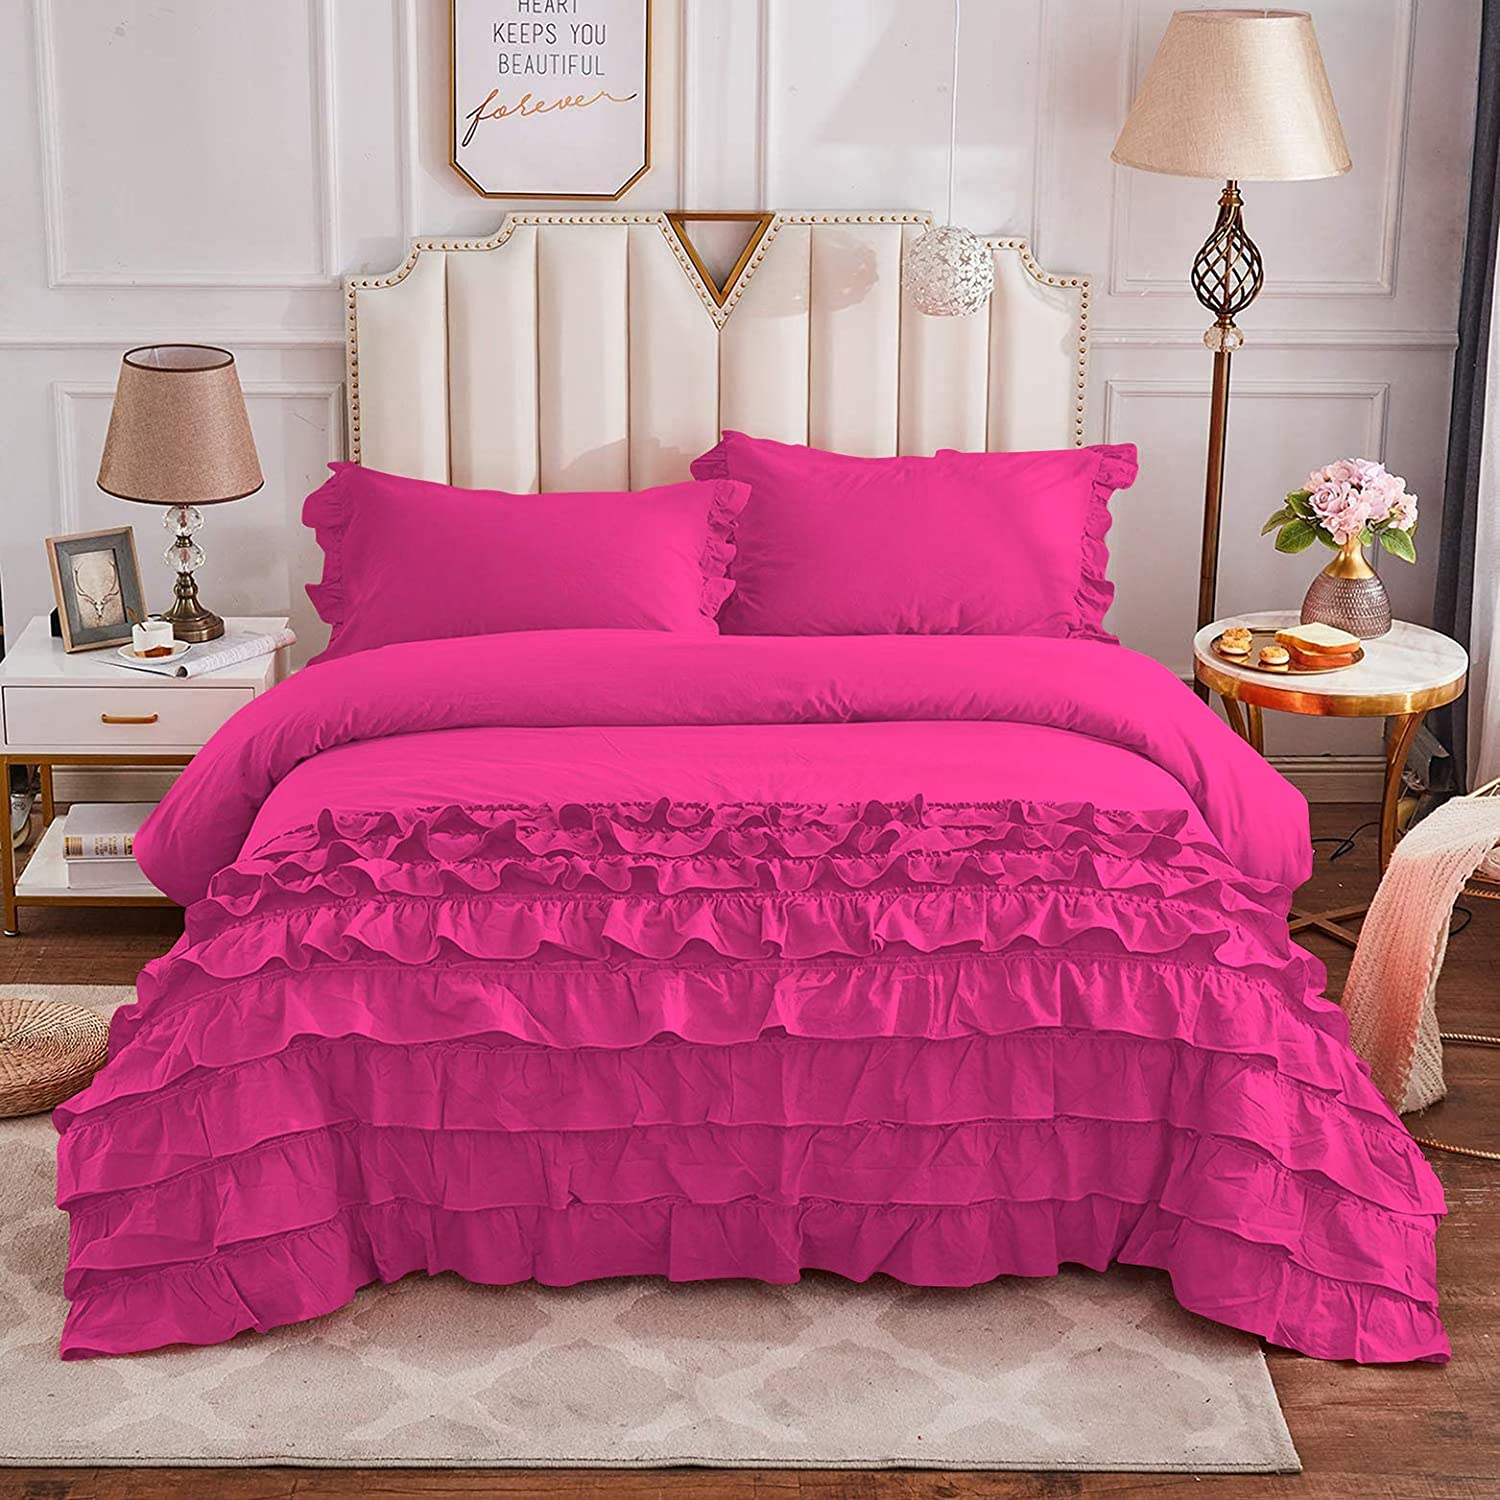 Under blast sales Silver Cotton Full New Orleans Mall Queen Size Vintage Bedding Ruffled Girls Cut